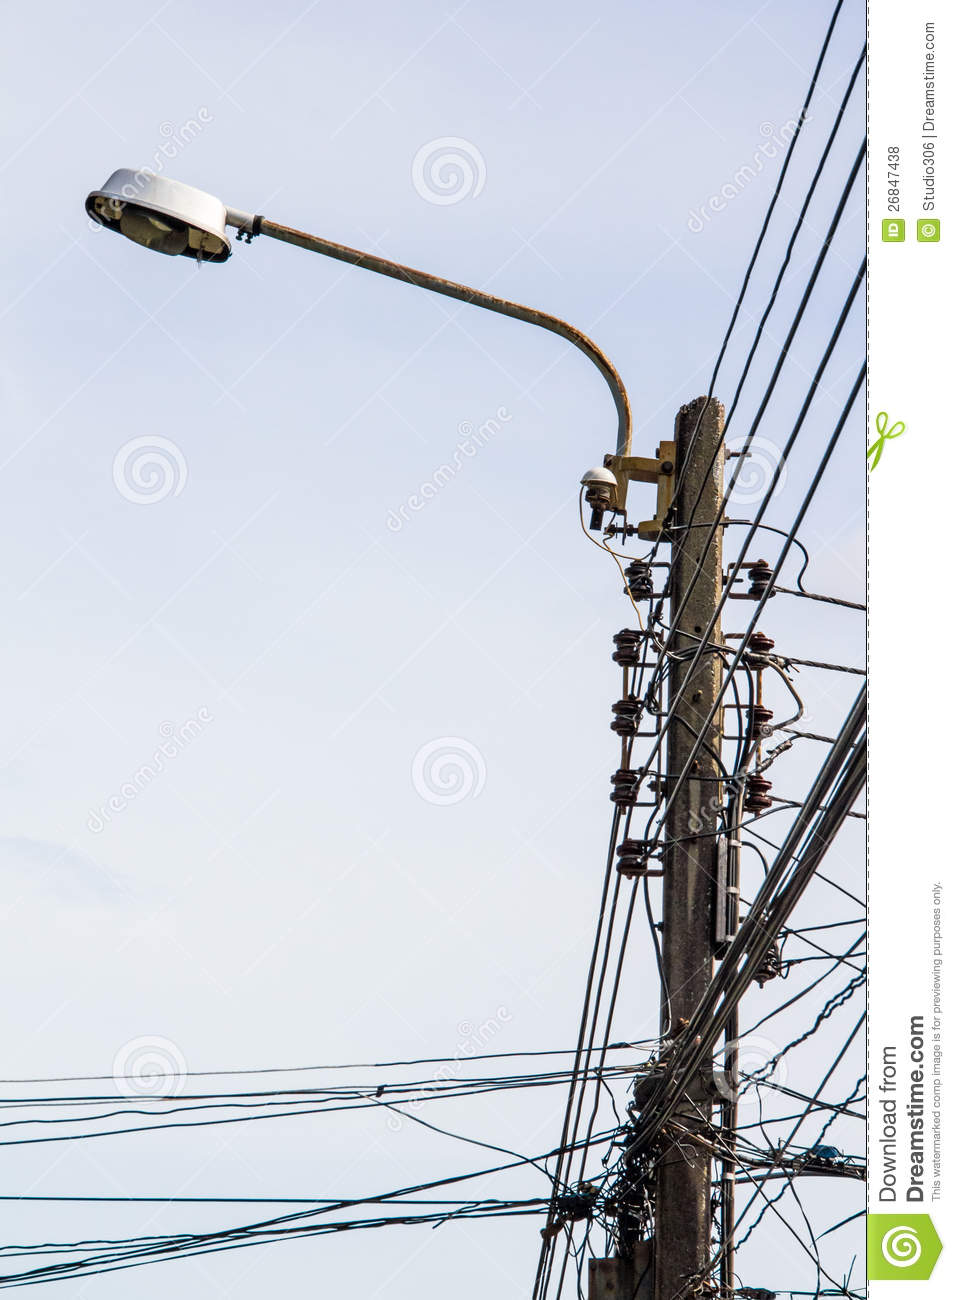 Lamp Post Electricity Royalty Free Stock Photos - Image: 26847438